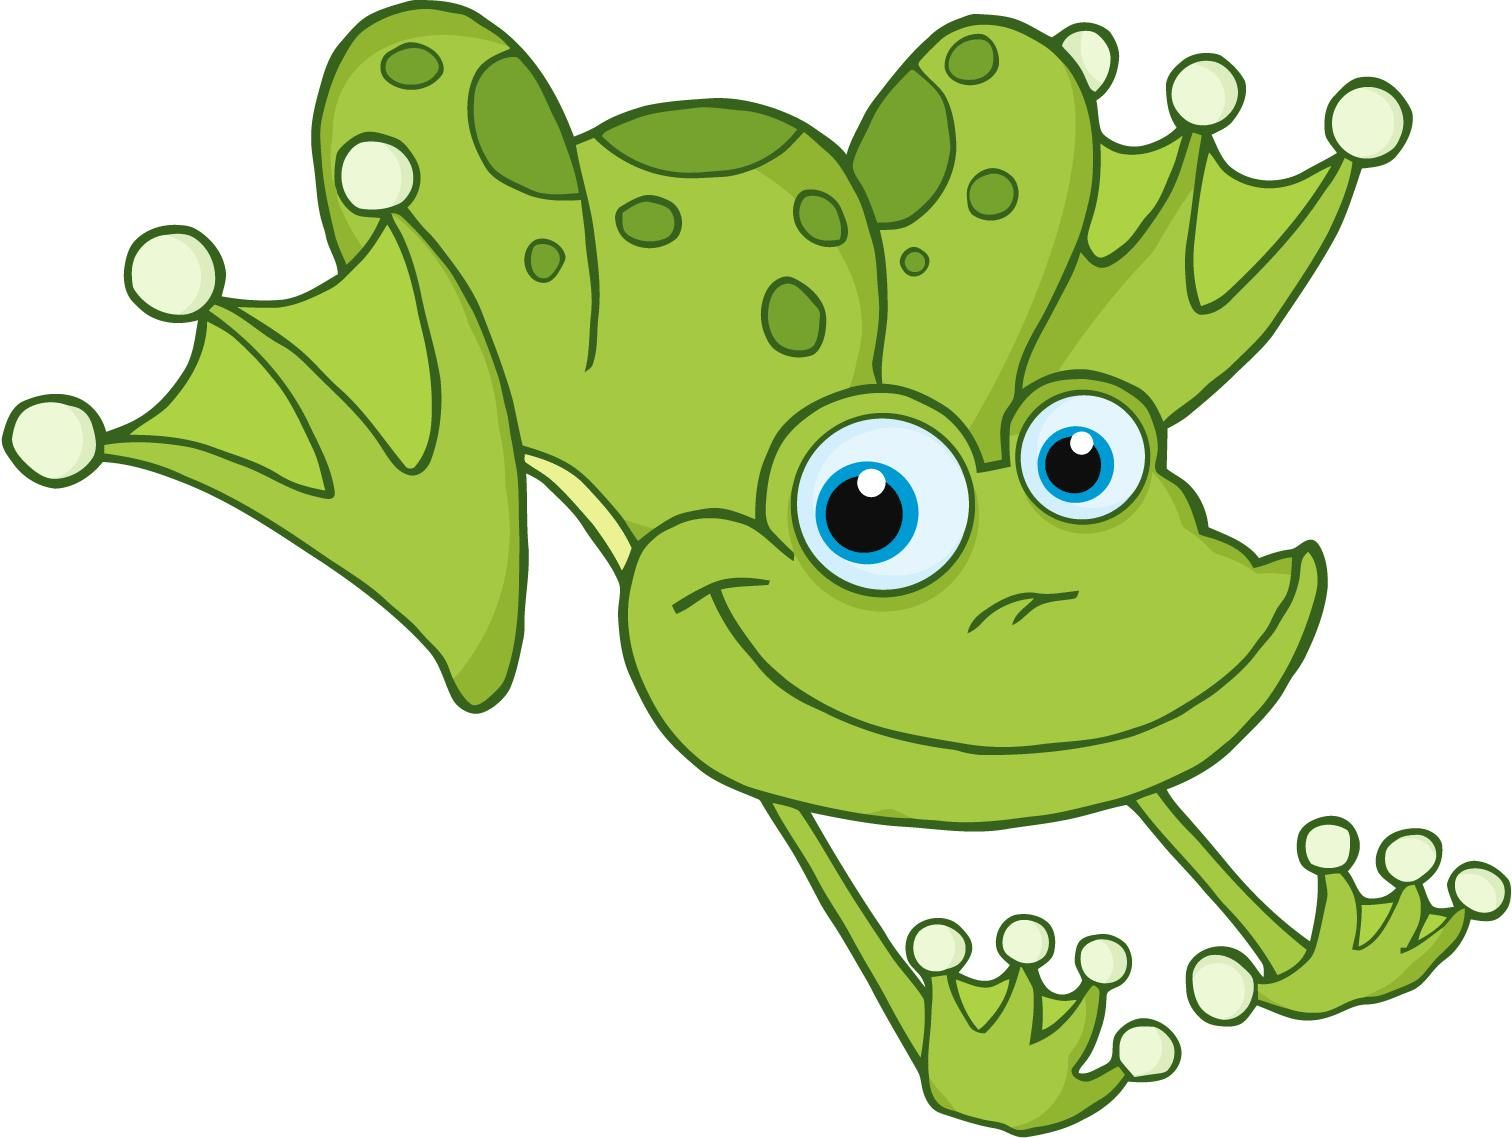 Animated hopping clipart good morning clip art freeuse download frogs cartoon images | This activity as well as all experiments and ... clip art freeuse download